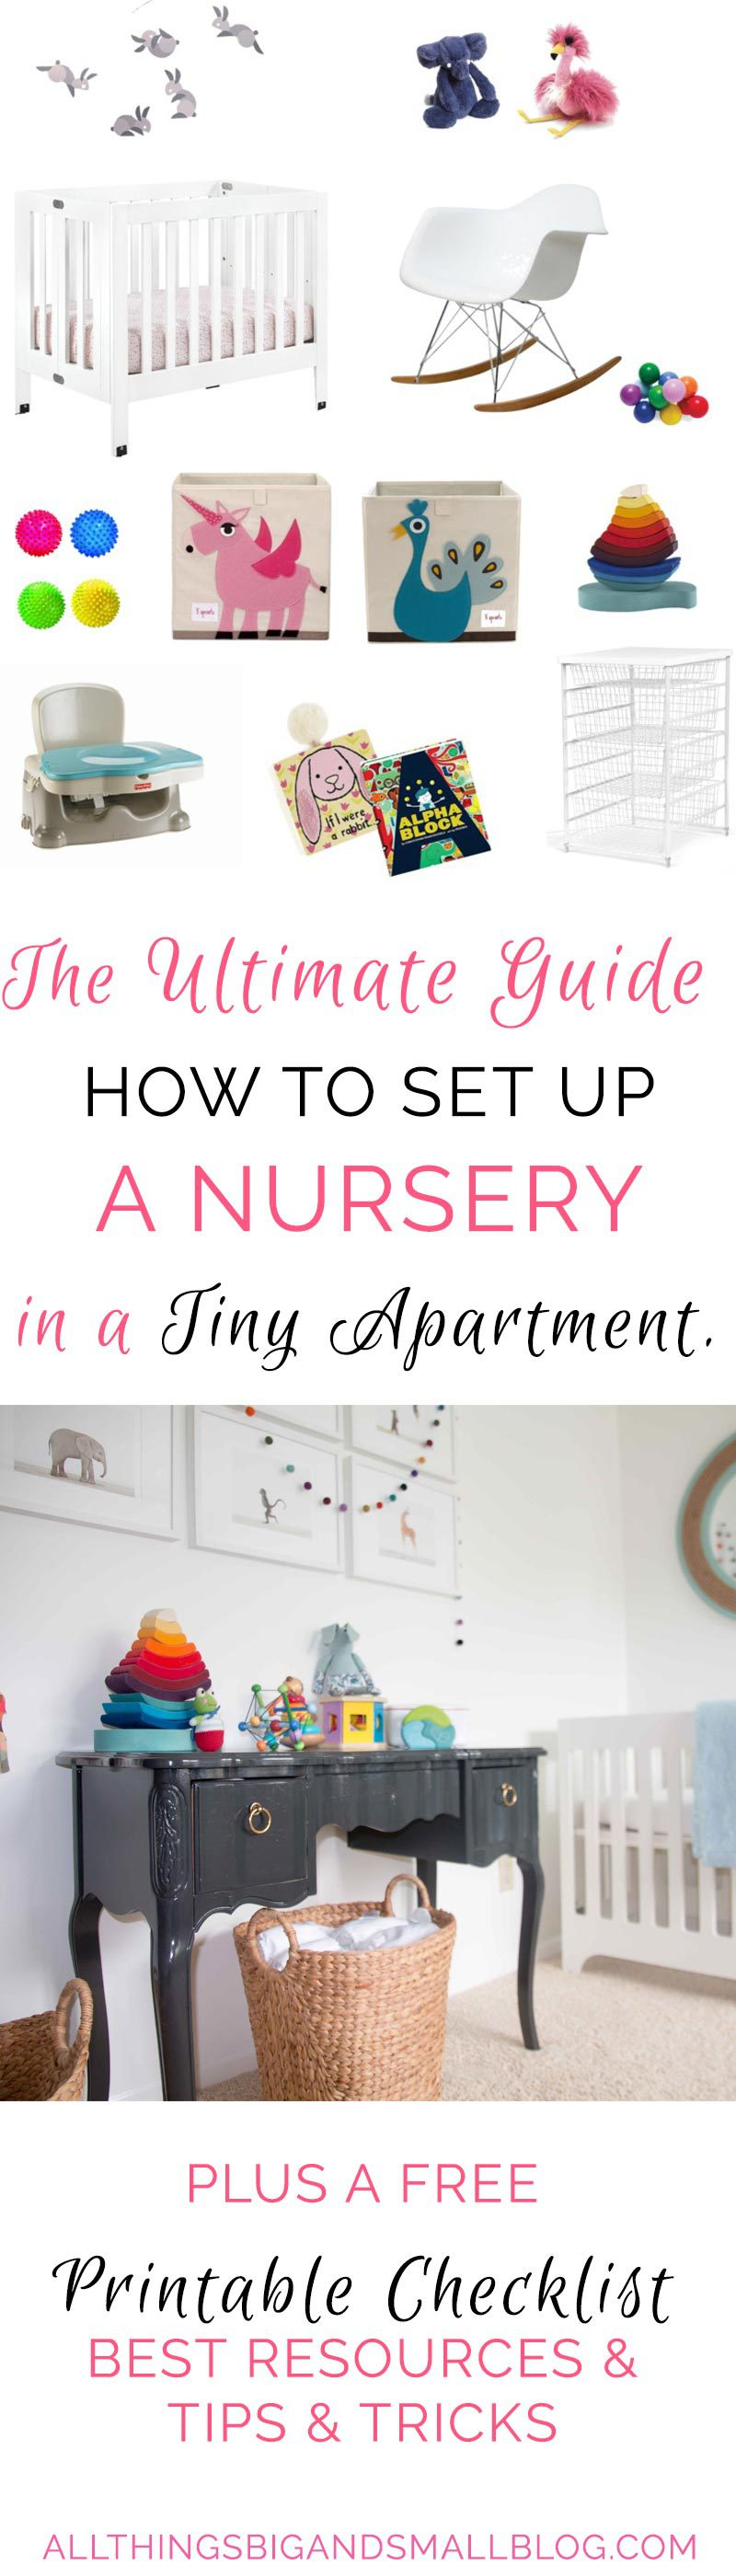 Small Space Living Raise A Baby In A Small Space Diy